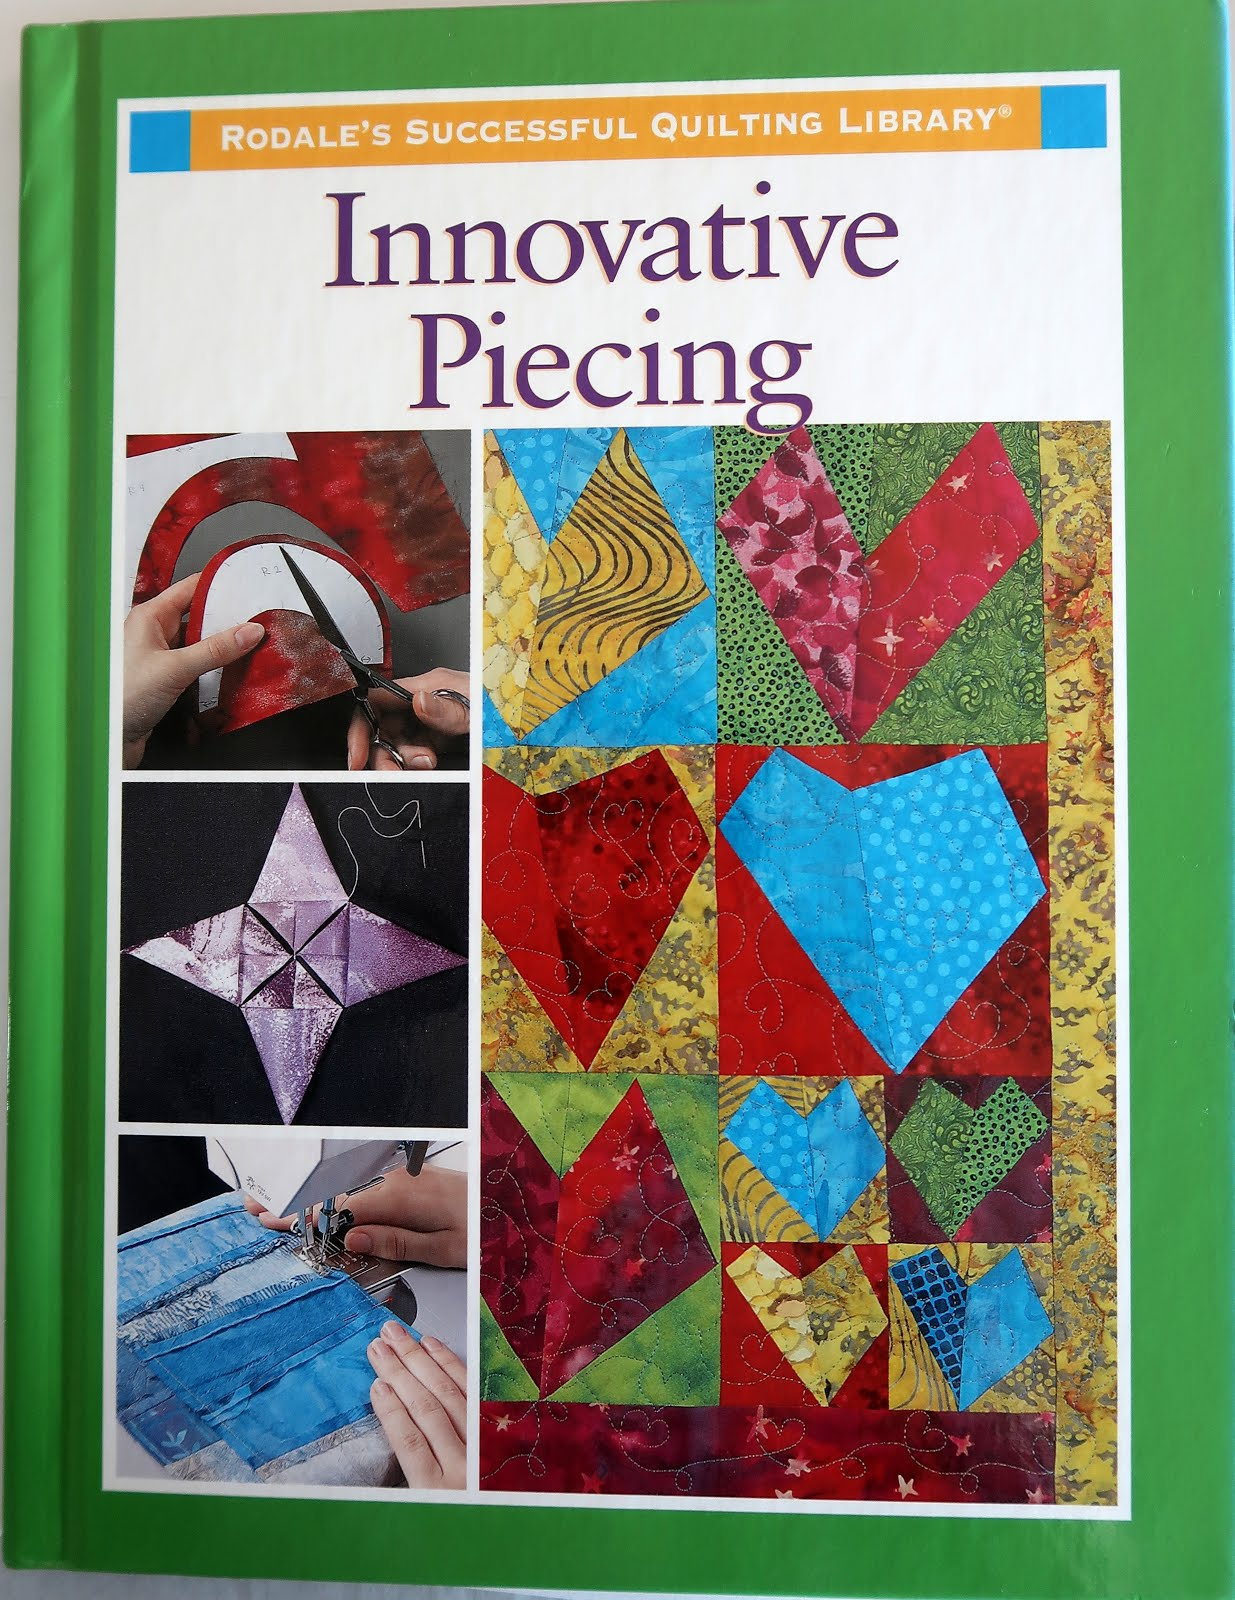 Innovative Piecing by Rodale!